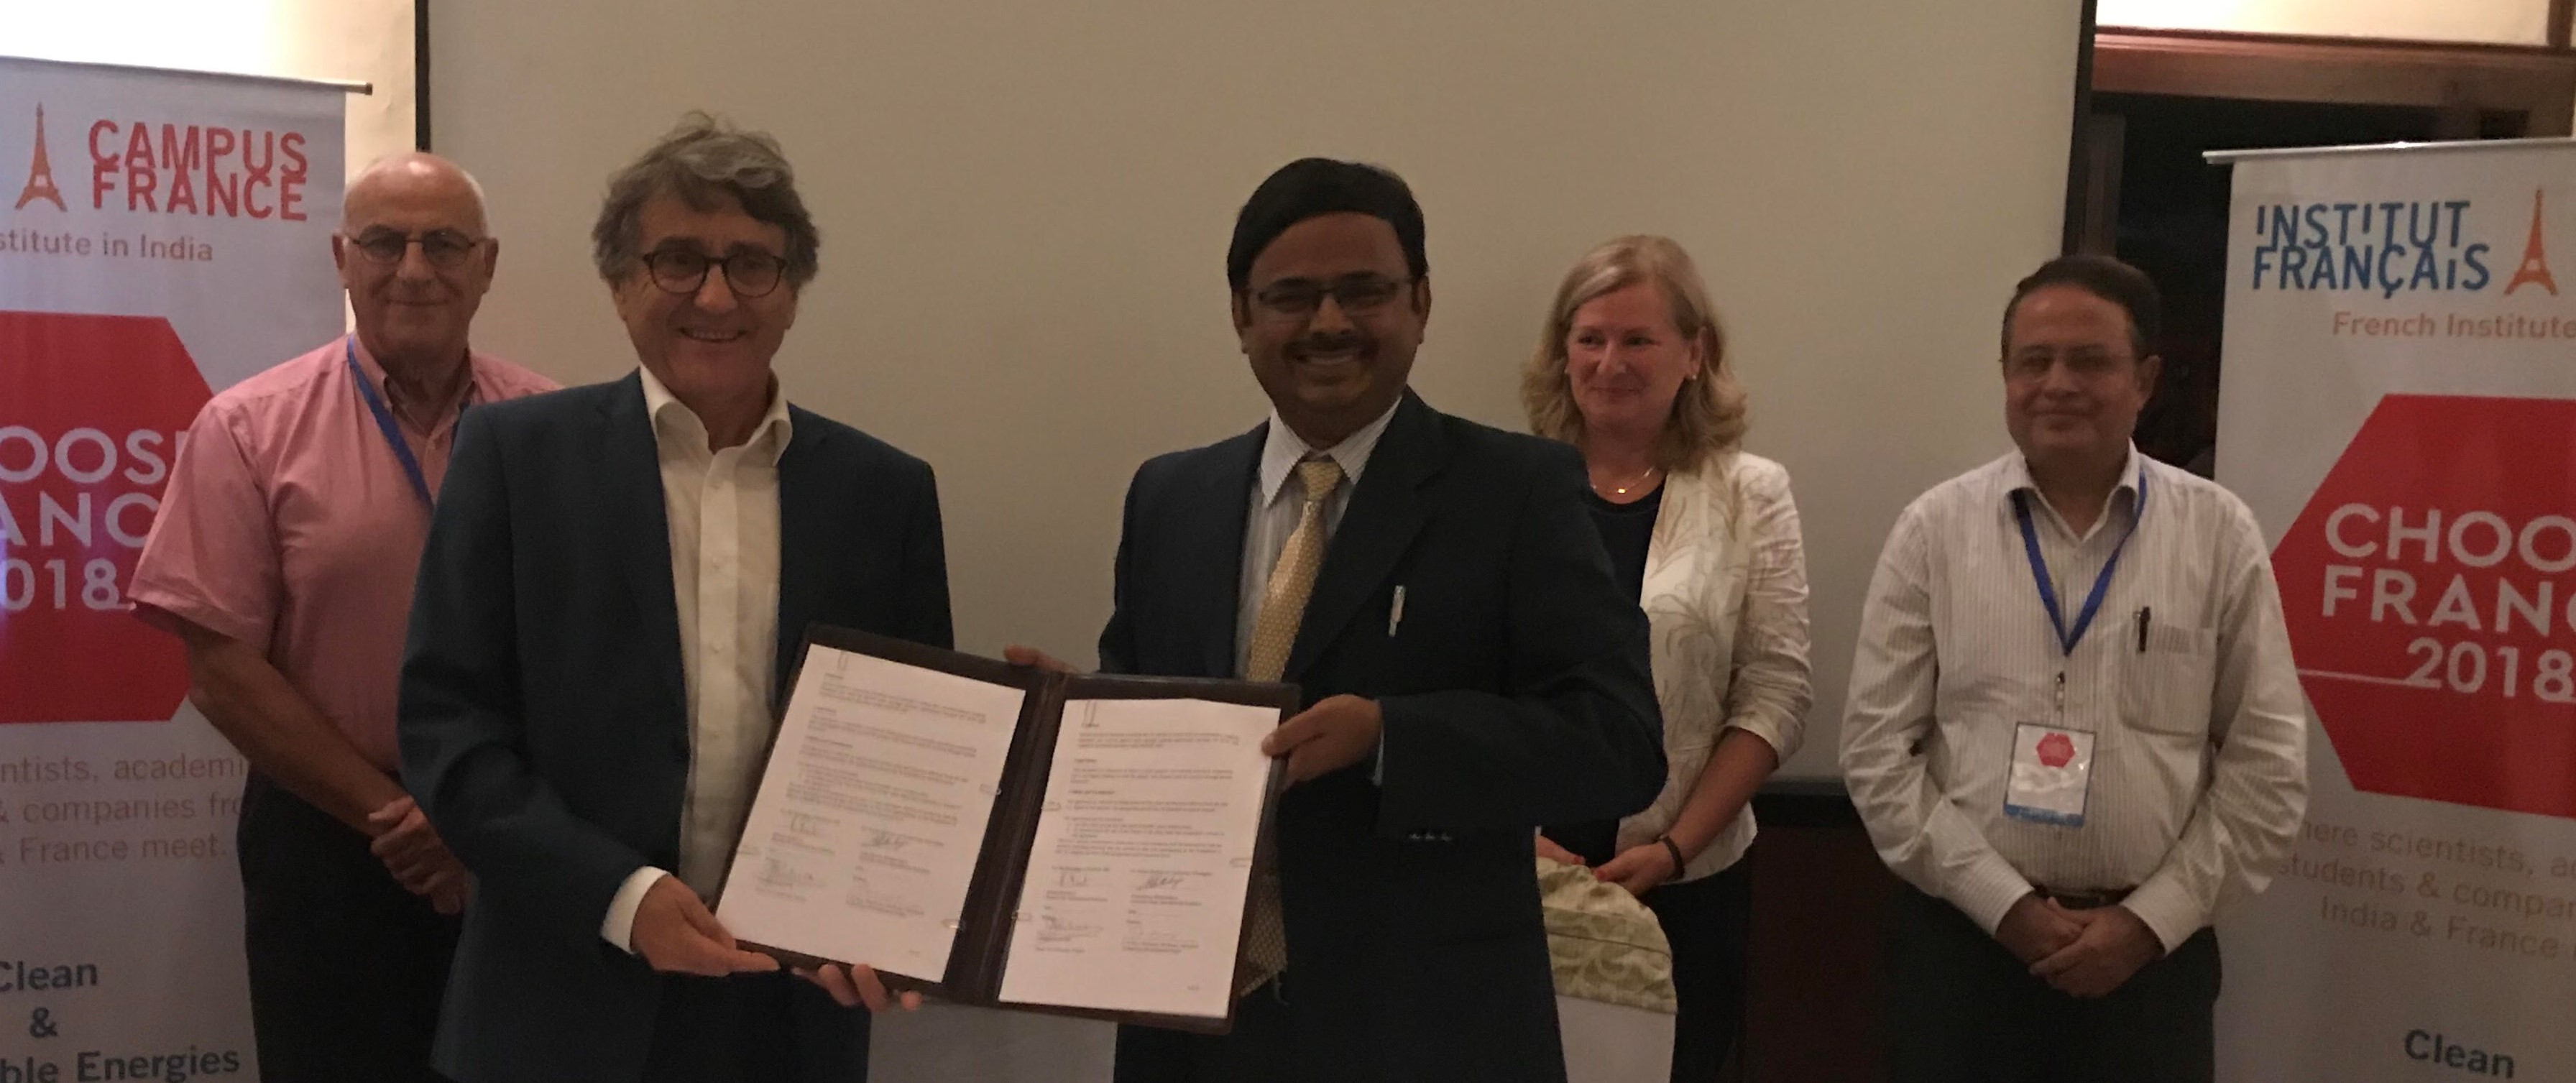 IIT KGP Collaborates with Top French Doctoral Network for Doctoral Education and Research